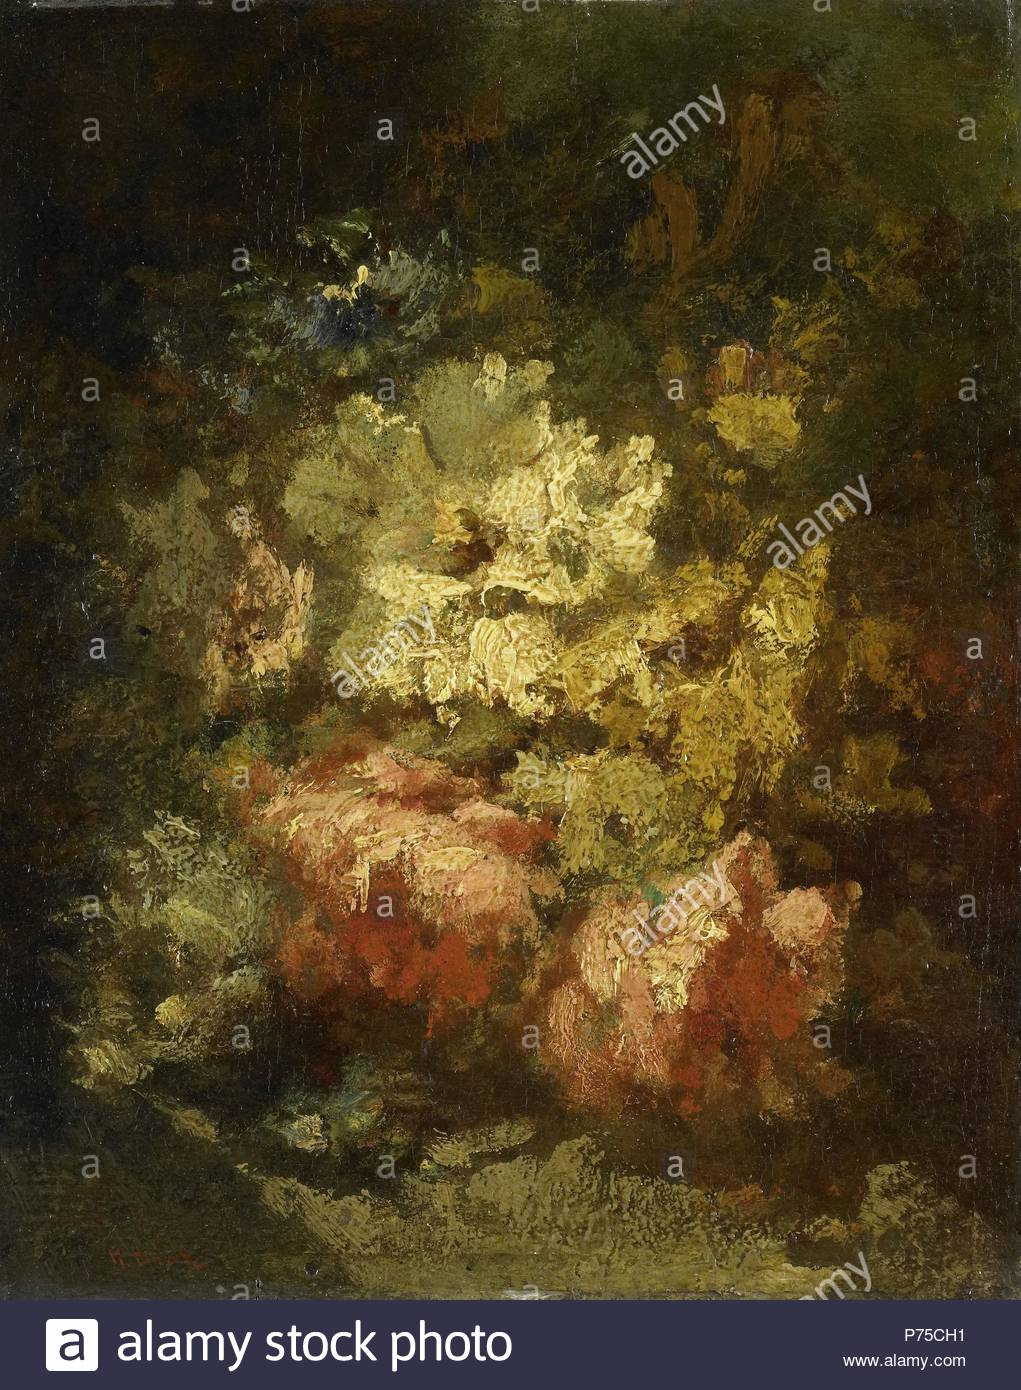 Still life with white and red roses, Narcisse Virgile Diaz de la Peña, 1860 - 1876, French painter of the Barbizon school. - Stock Image